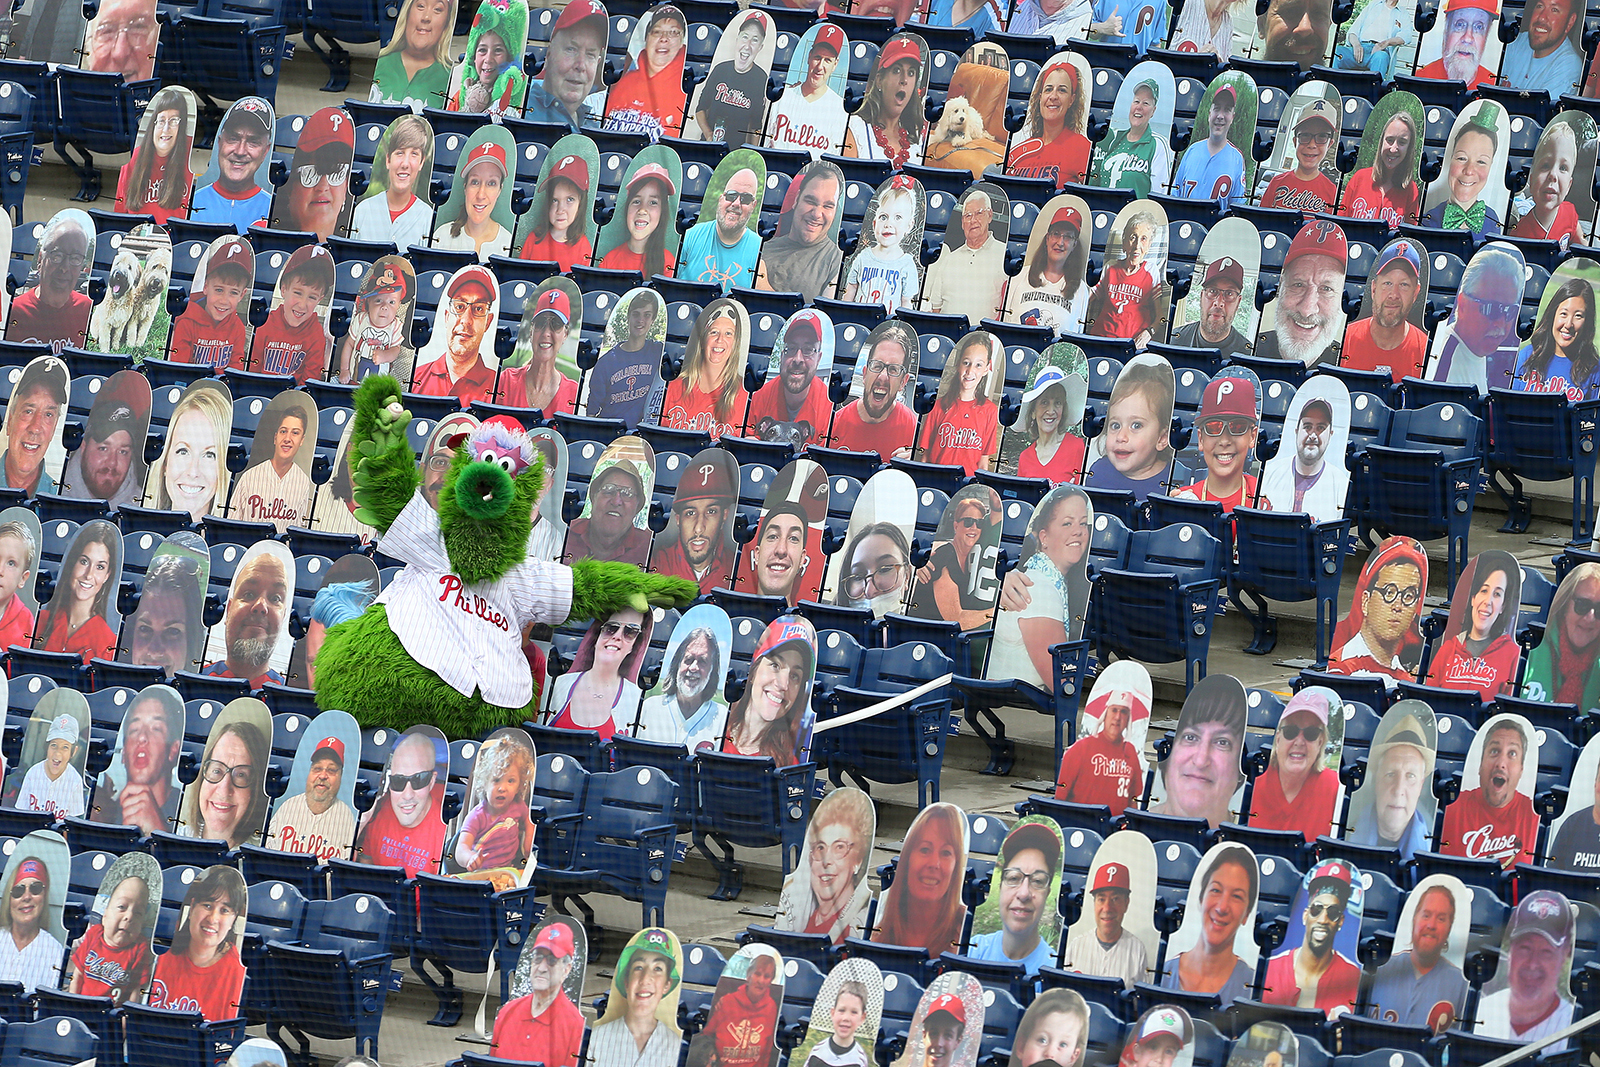 The Phillie Phanatic shows off the foul ball he caught amongst the cardboard cutout fans during an MLB baseball game between the Philadelphia Phillies and New York Mets at Citizens Bank Park on August 16, in Philadelphia, Pennsylvania.